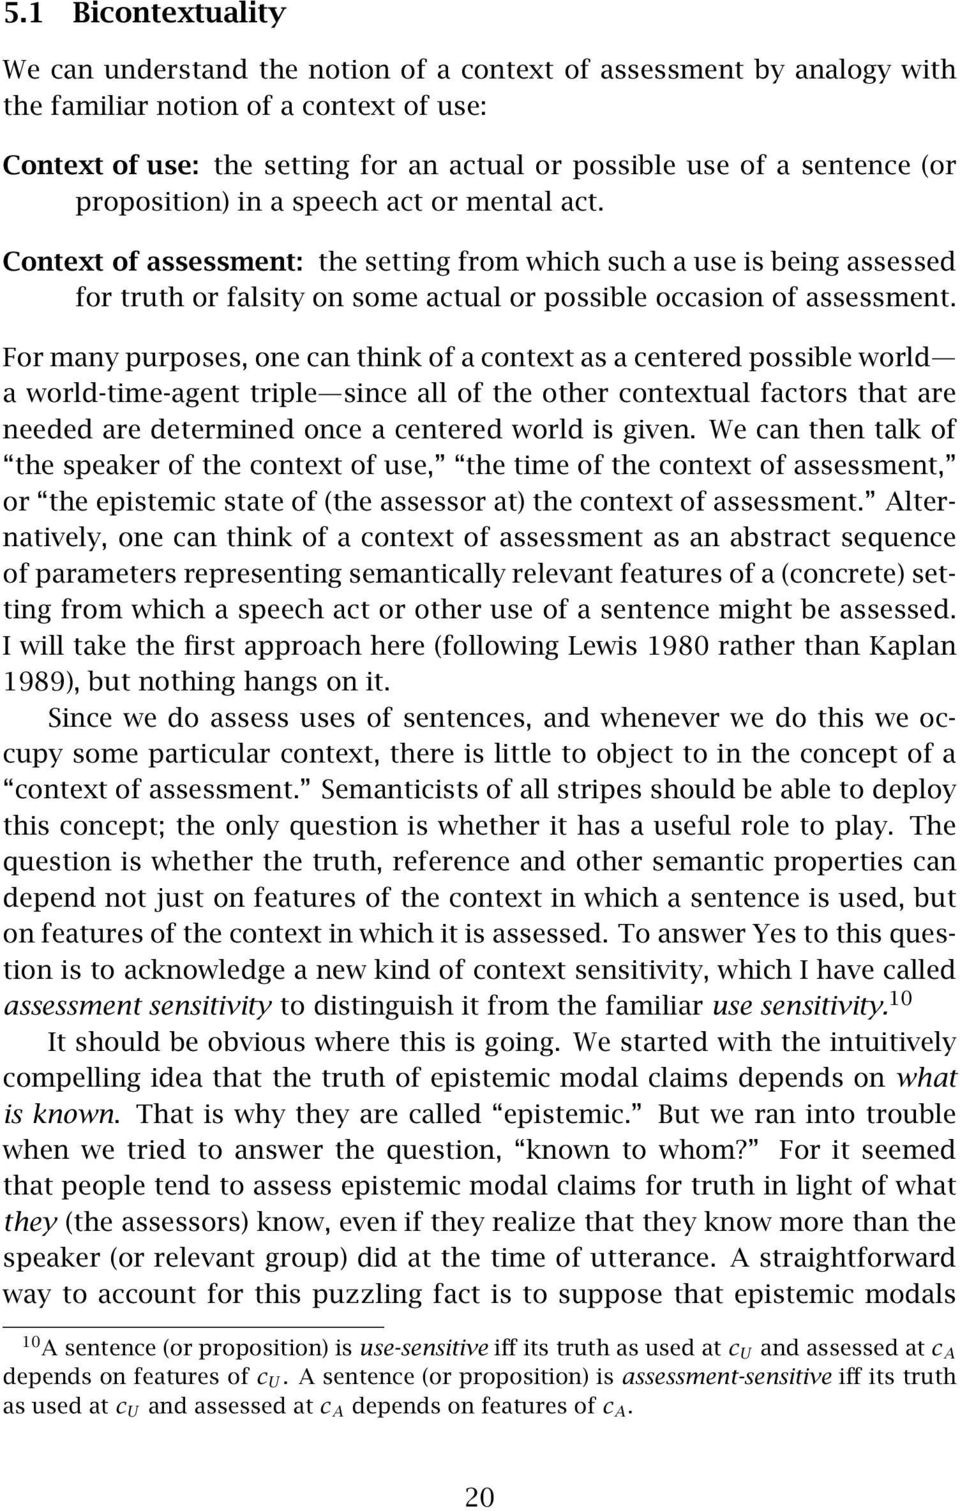 Context of assessment: the setting from which such a use is being assessed for truth or falsity on some actual or possible occasion of assessment.